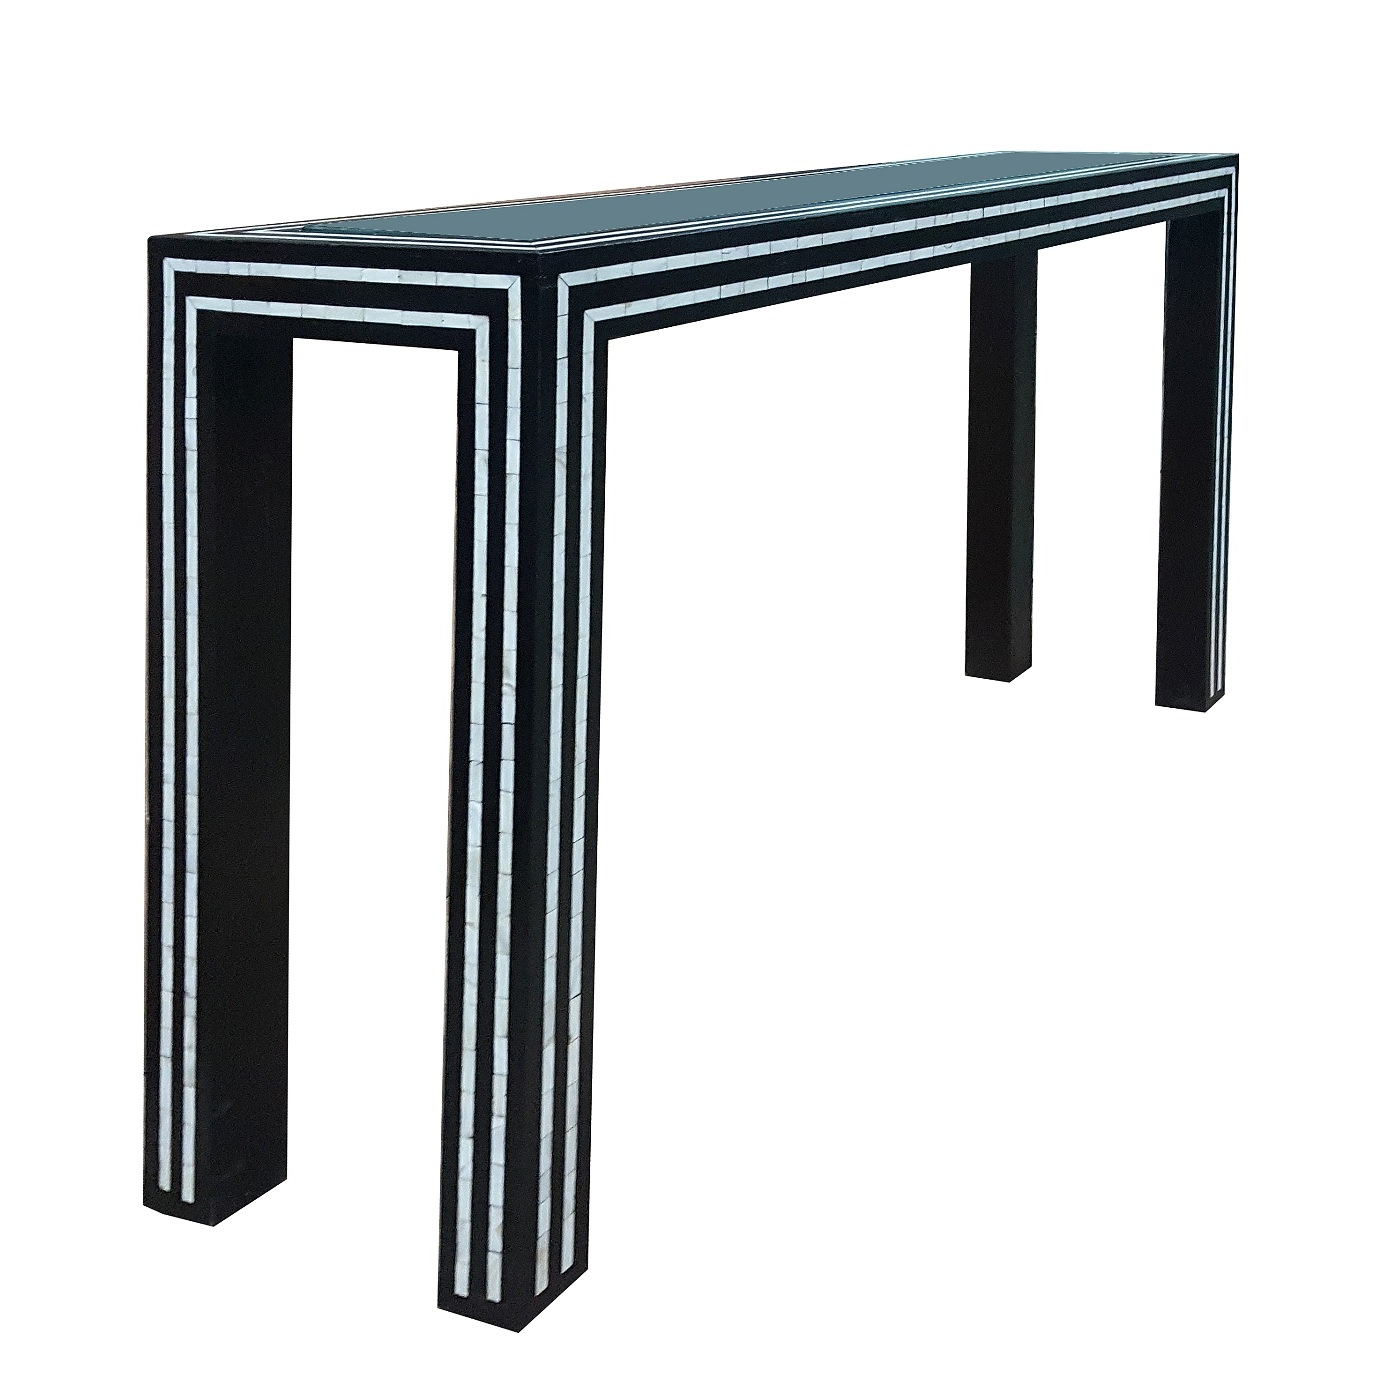 Famous Black And White Pearl Inlay Console: Glass And Inlay Console Table With Black And White Inlay Console Tables (View 7 of 20)